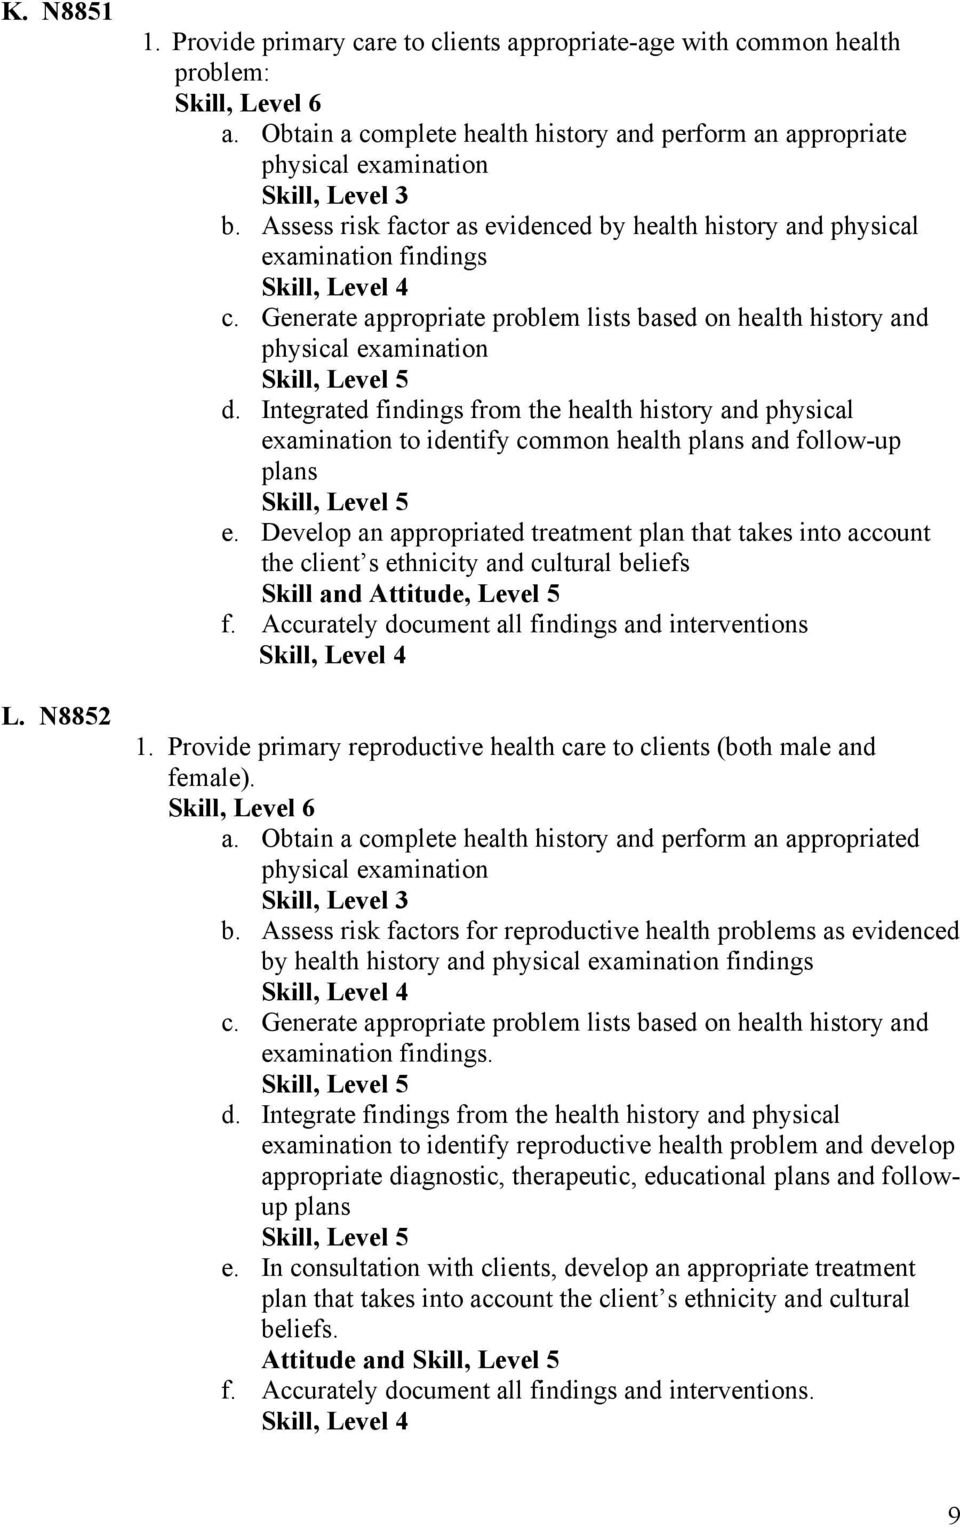 Integrated findings from the health history and physical examination to identify common health plans and follow-up plans e.